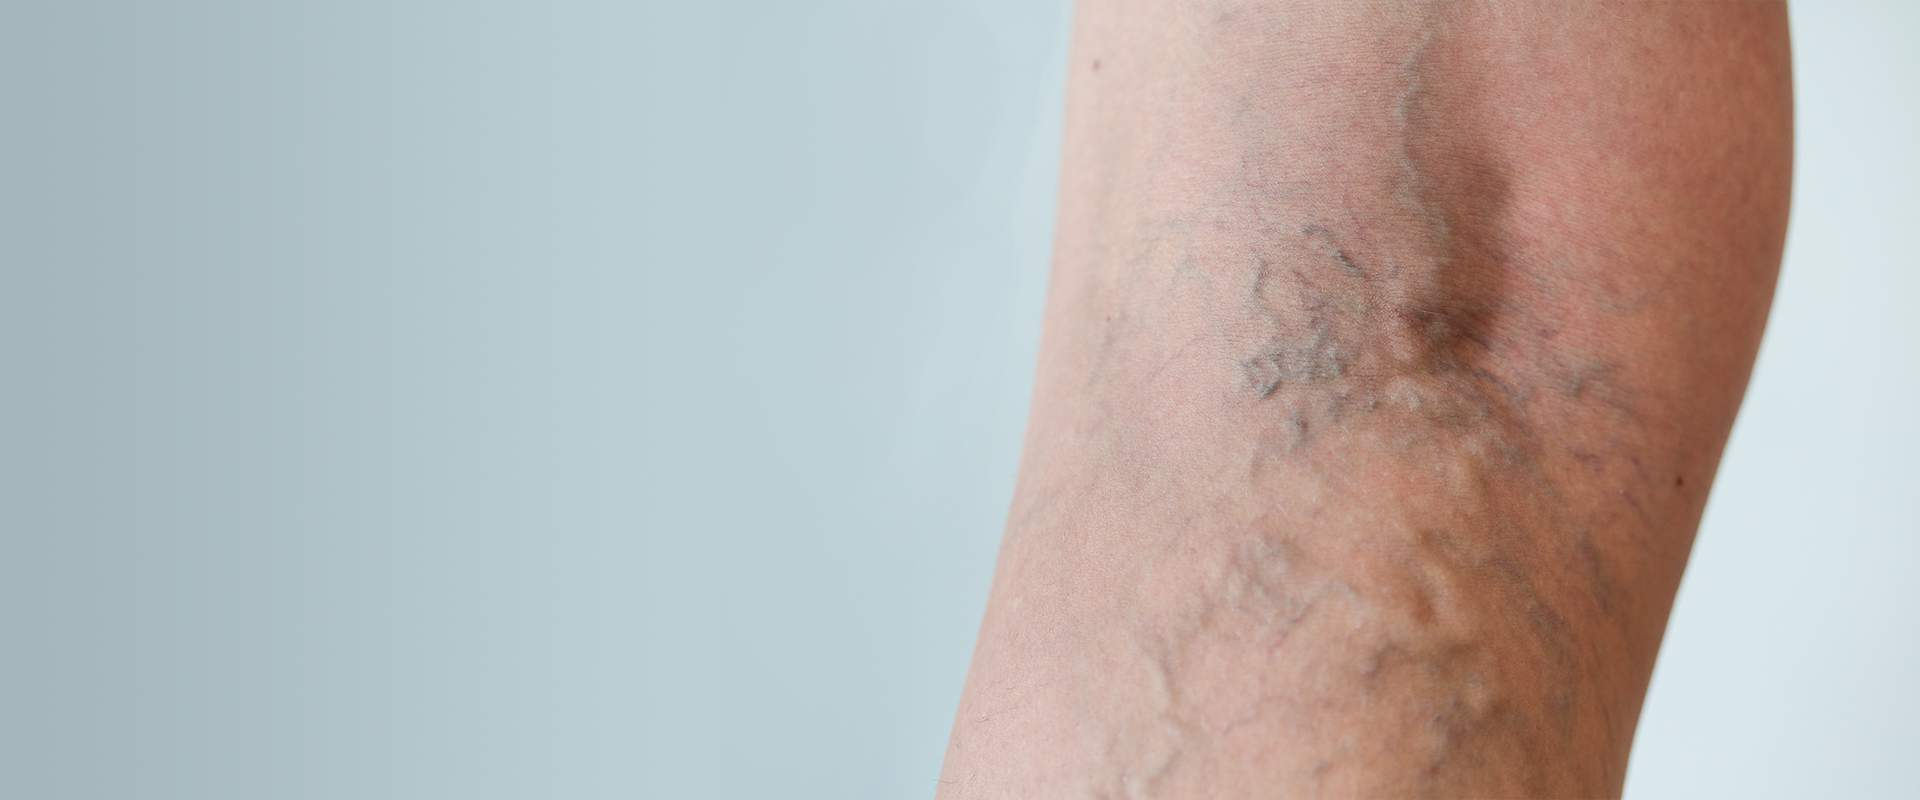 Varicose veins of the pelvis: causes, symptoms and treatment methods 77